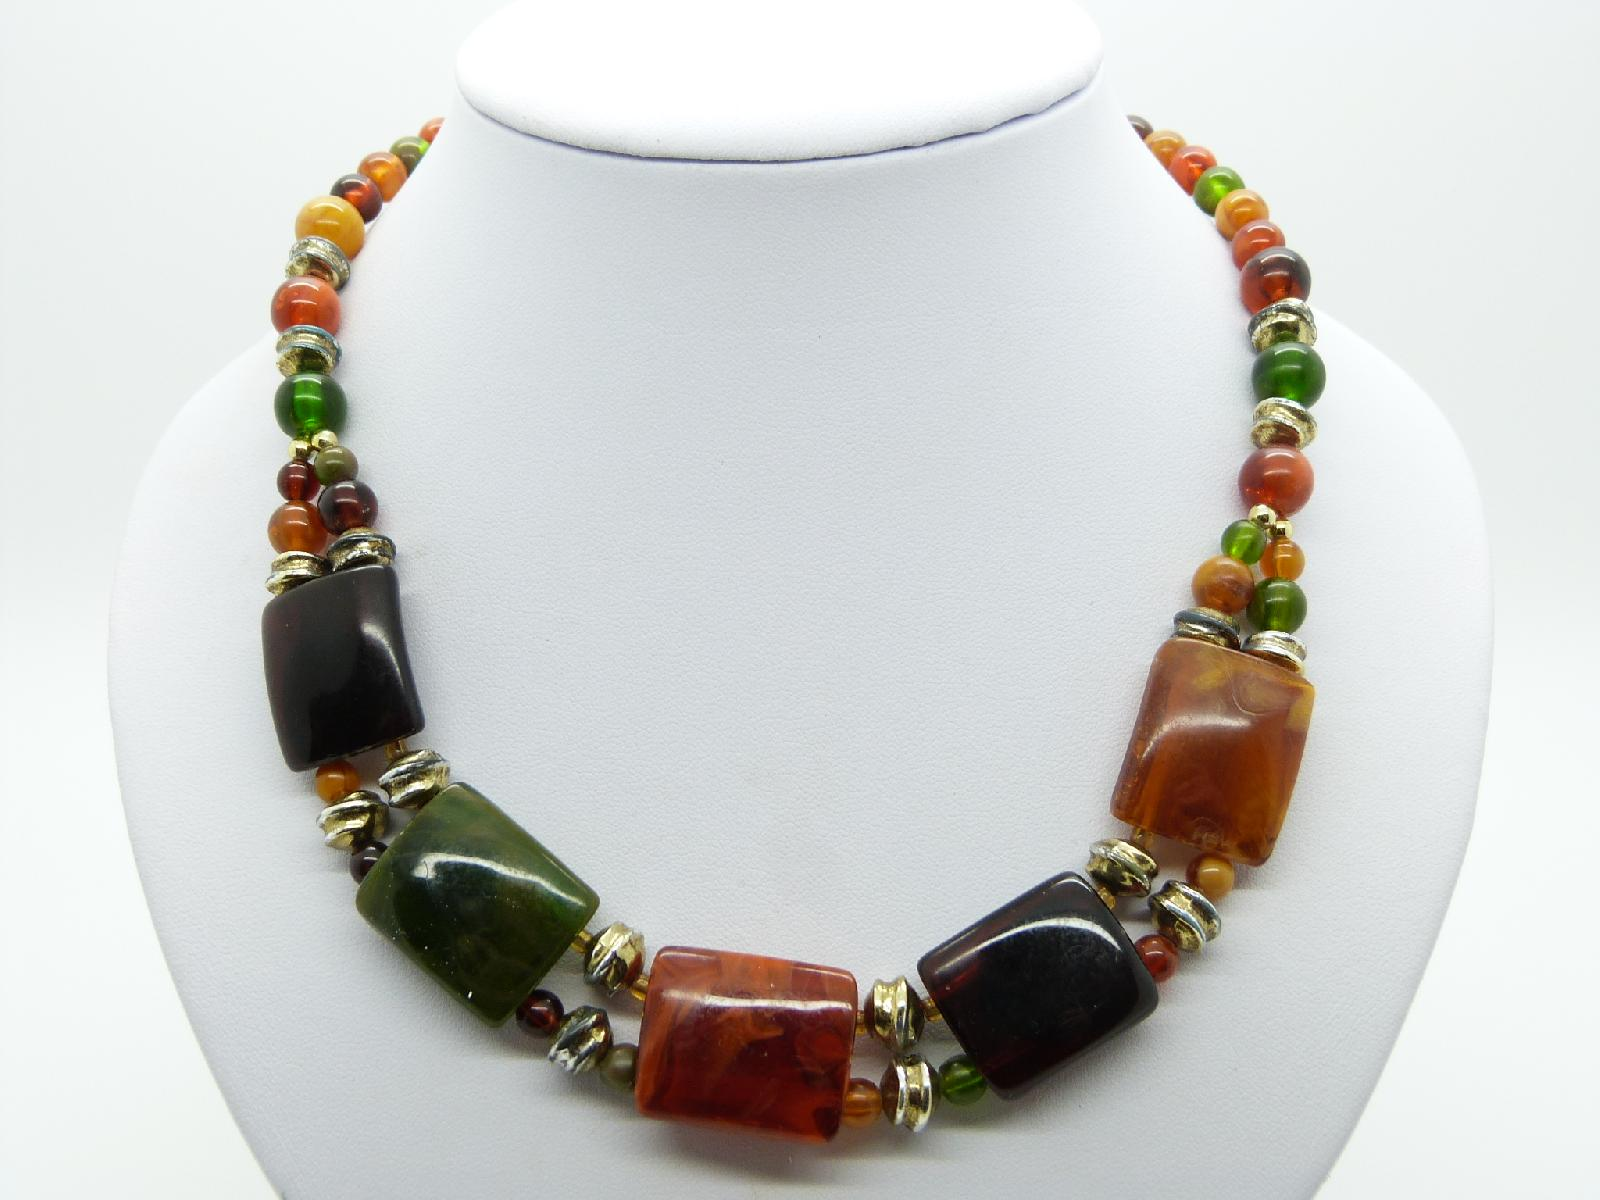 £15.00 - Vintage 70s Attractive and Unique Green and Amber Lucite Bead Necklace 49cms